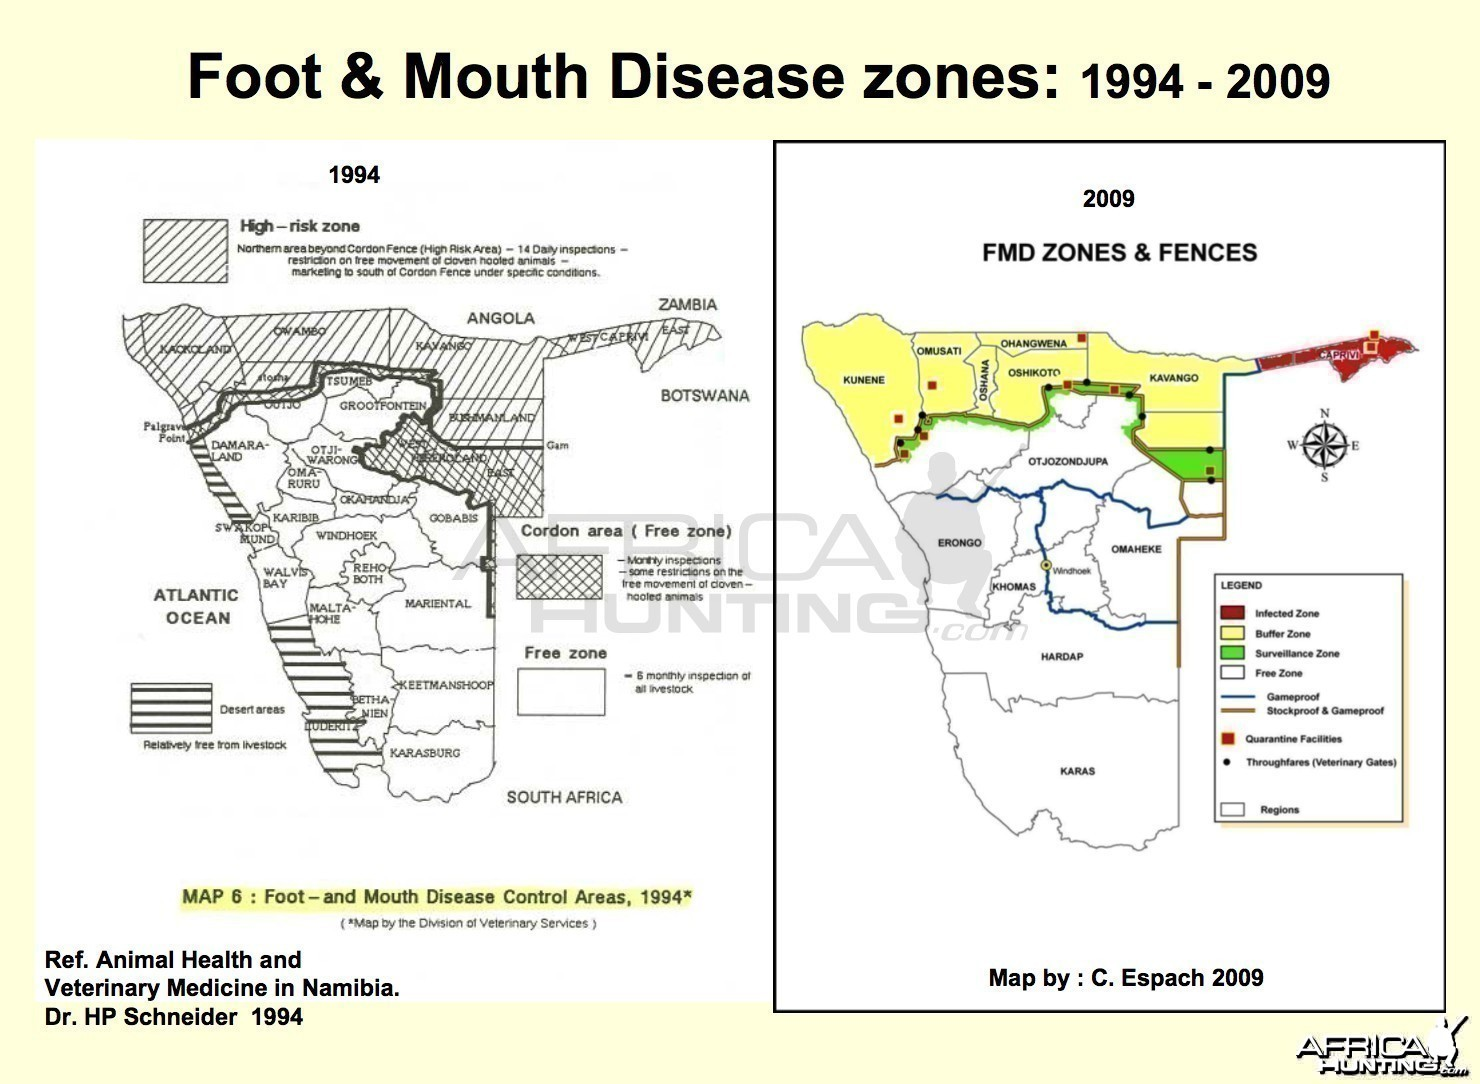 Foot & Mouth Disease Zones in Namibia 1994 -2009